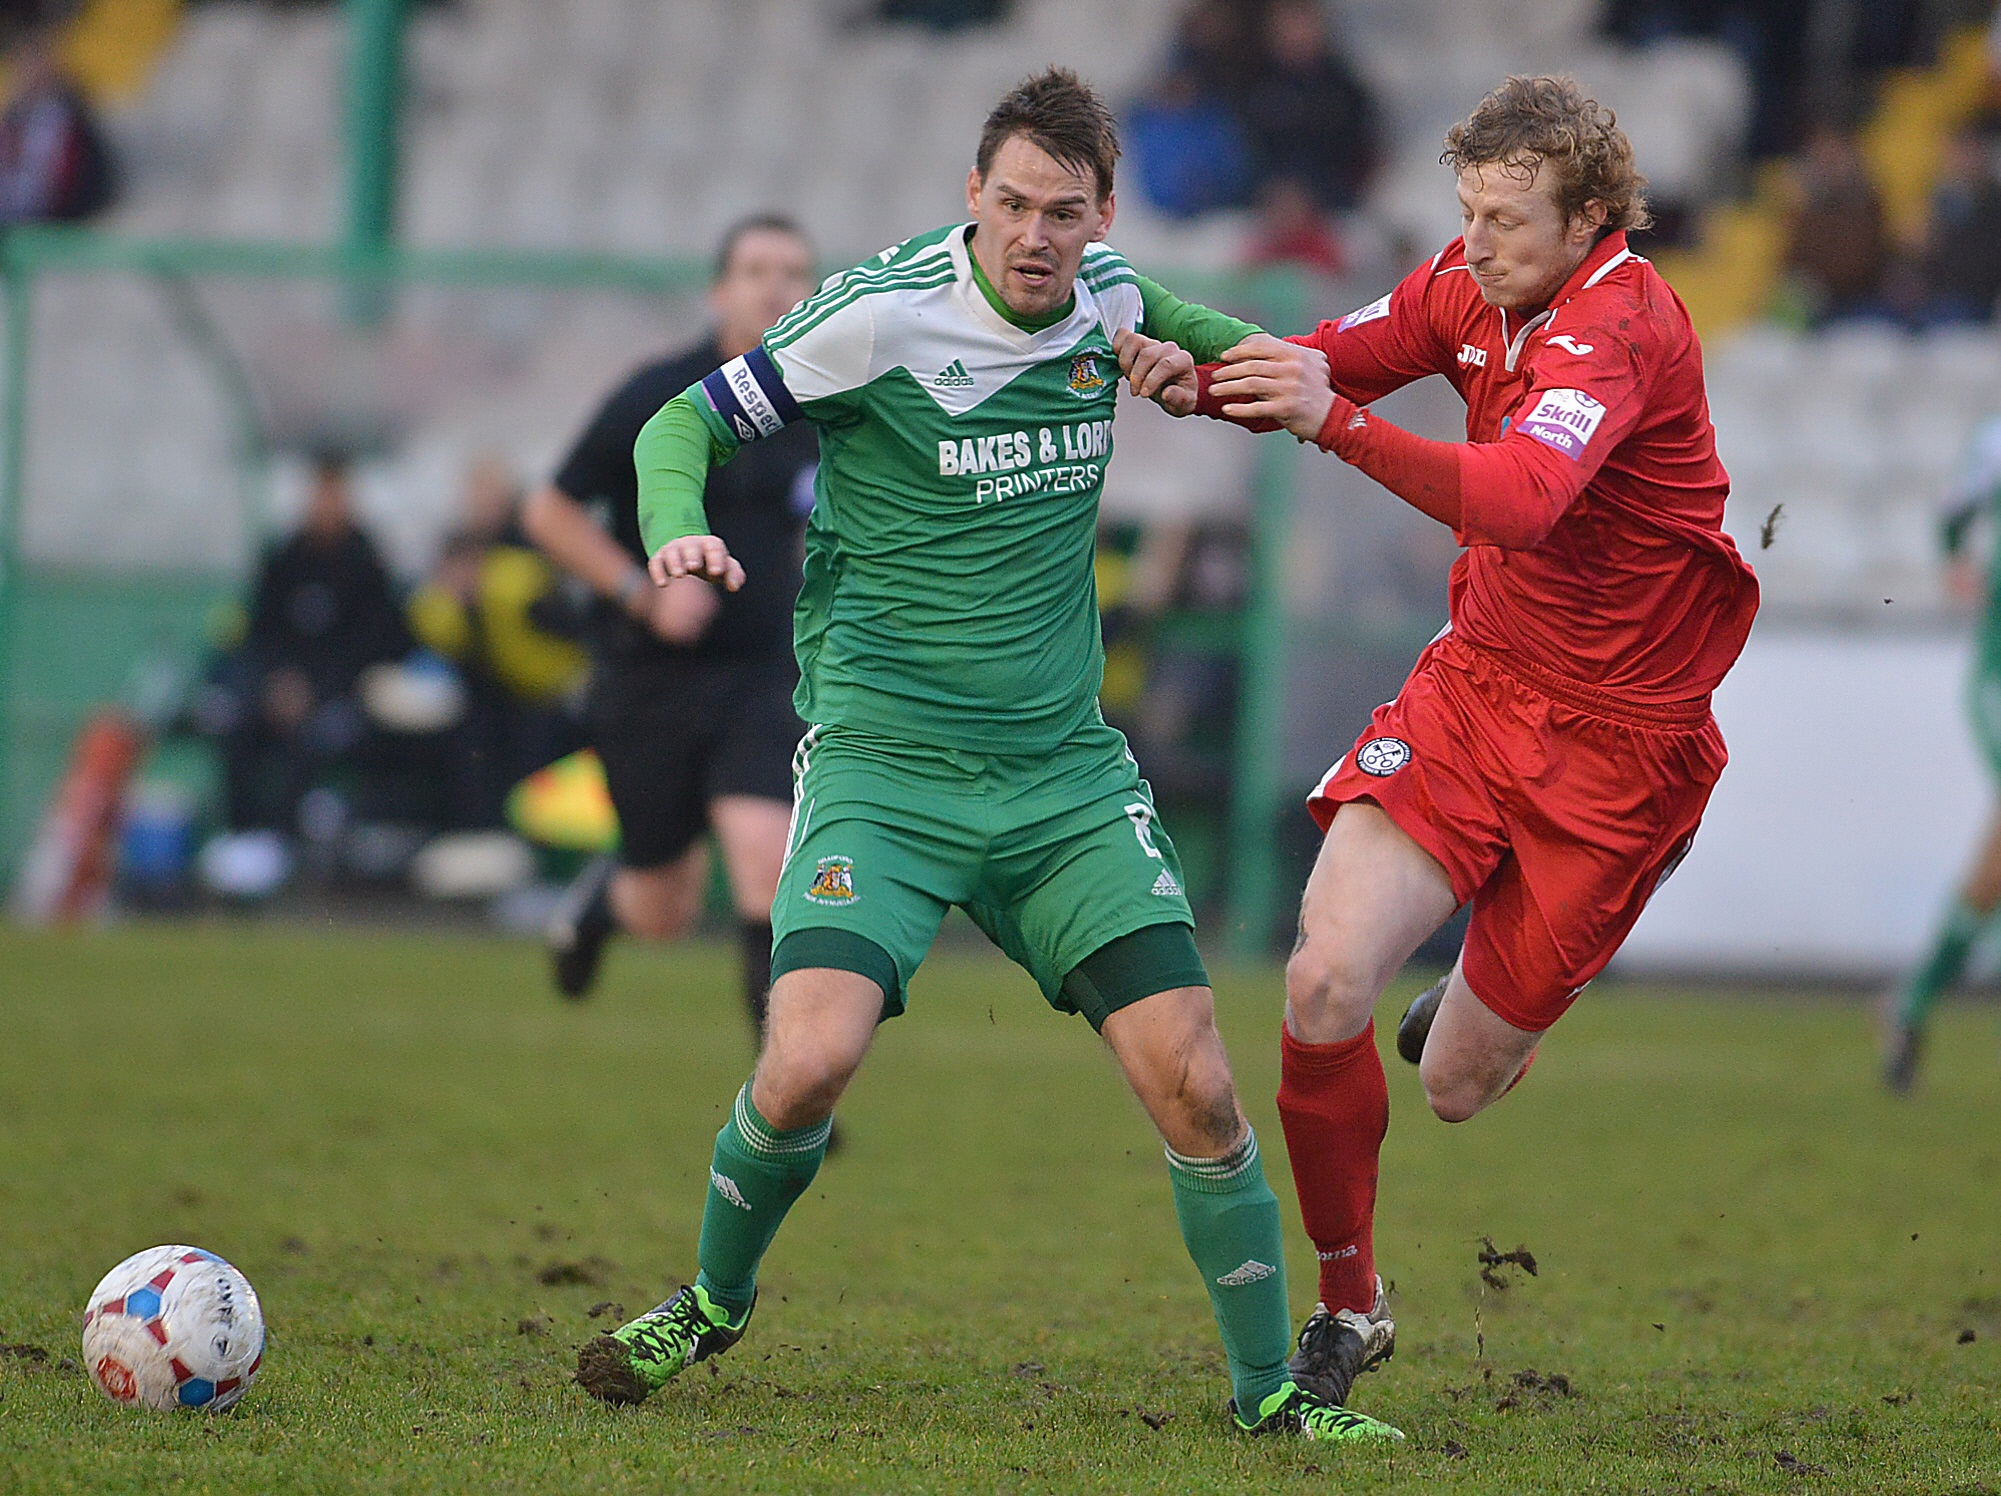 Skipper Nathan Hotte has joined the players committing their future to Avenue